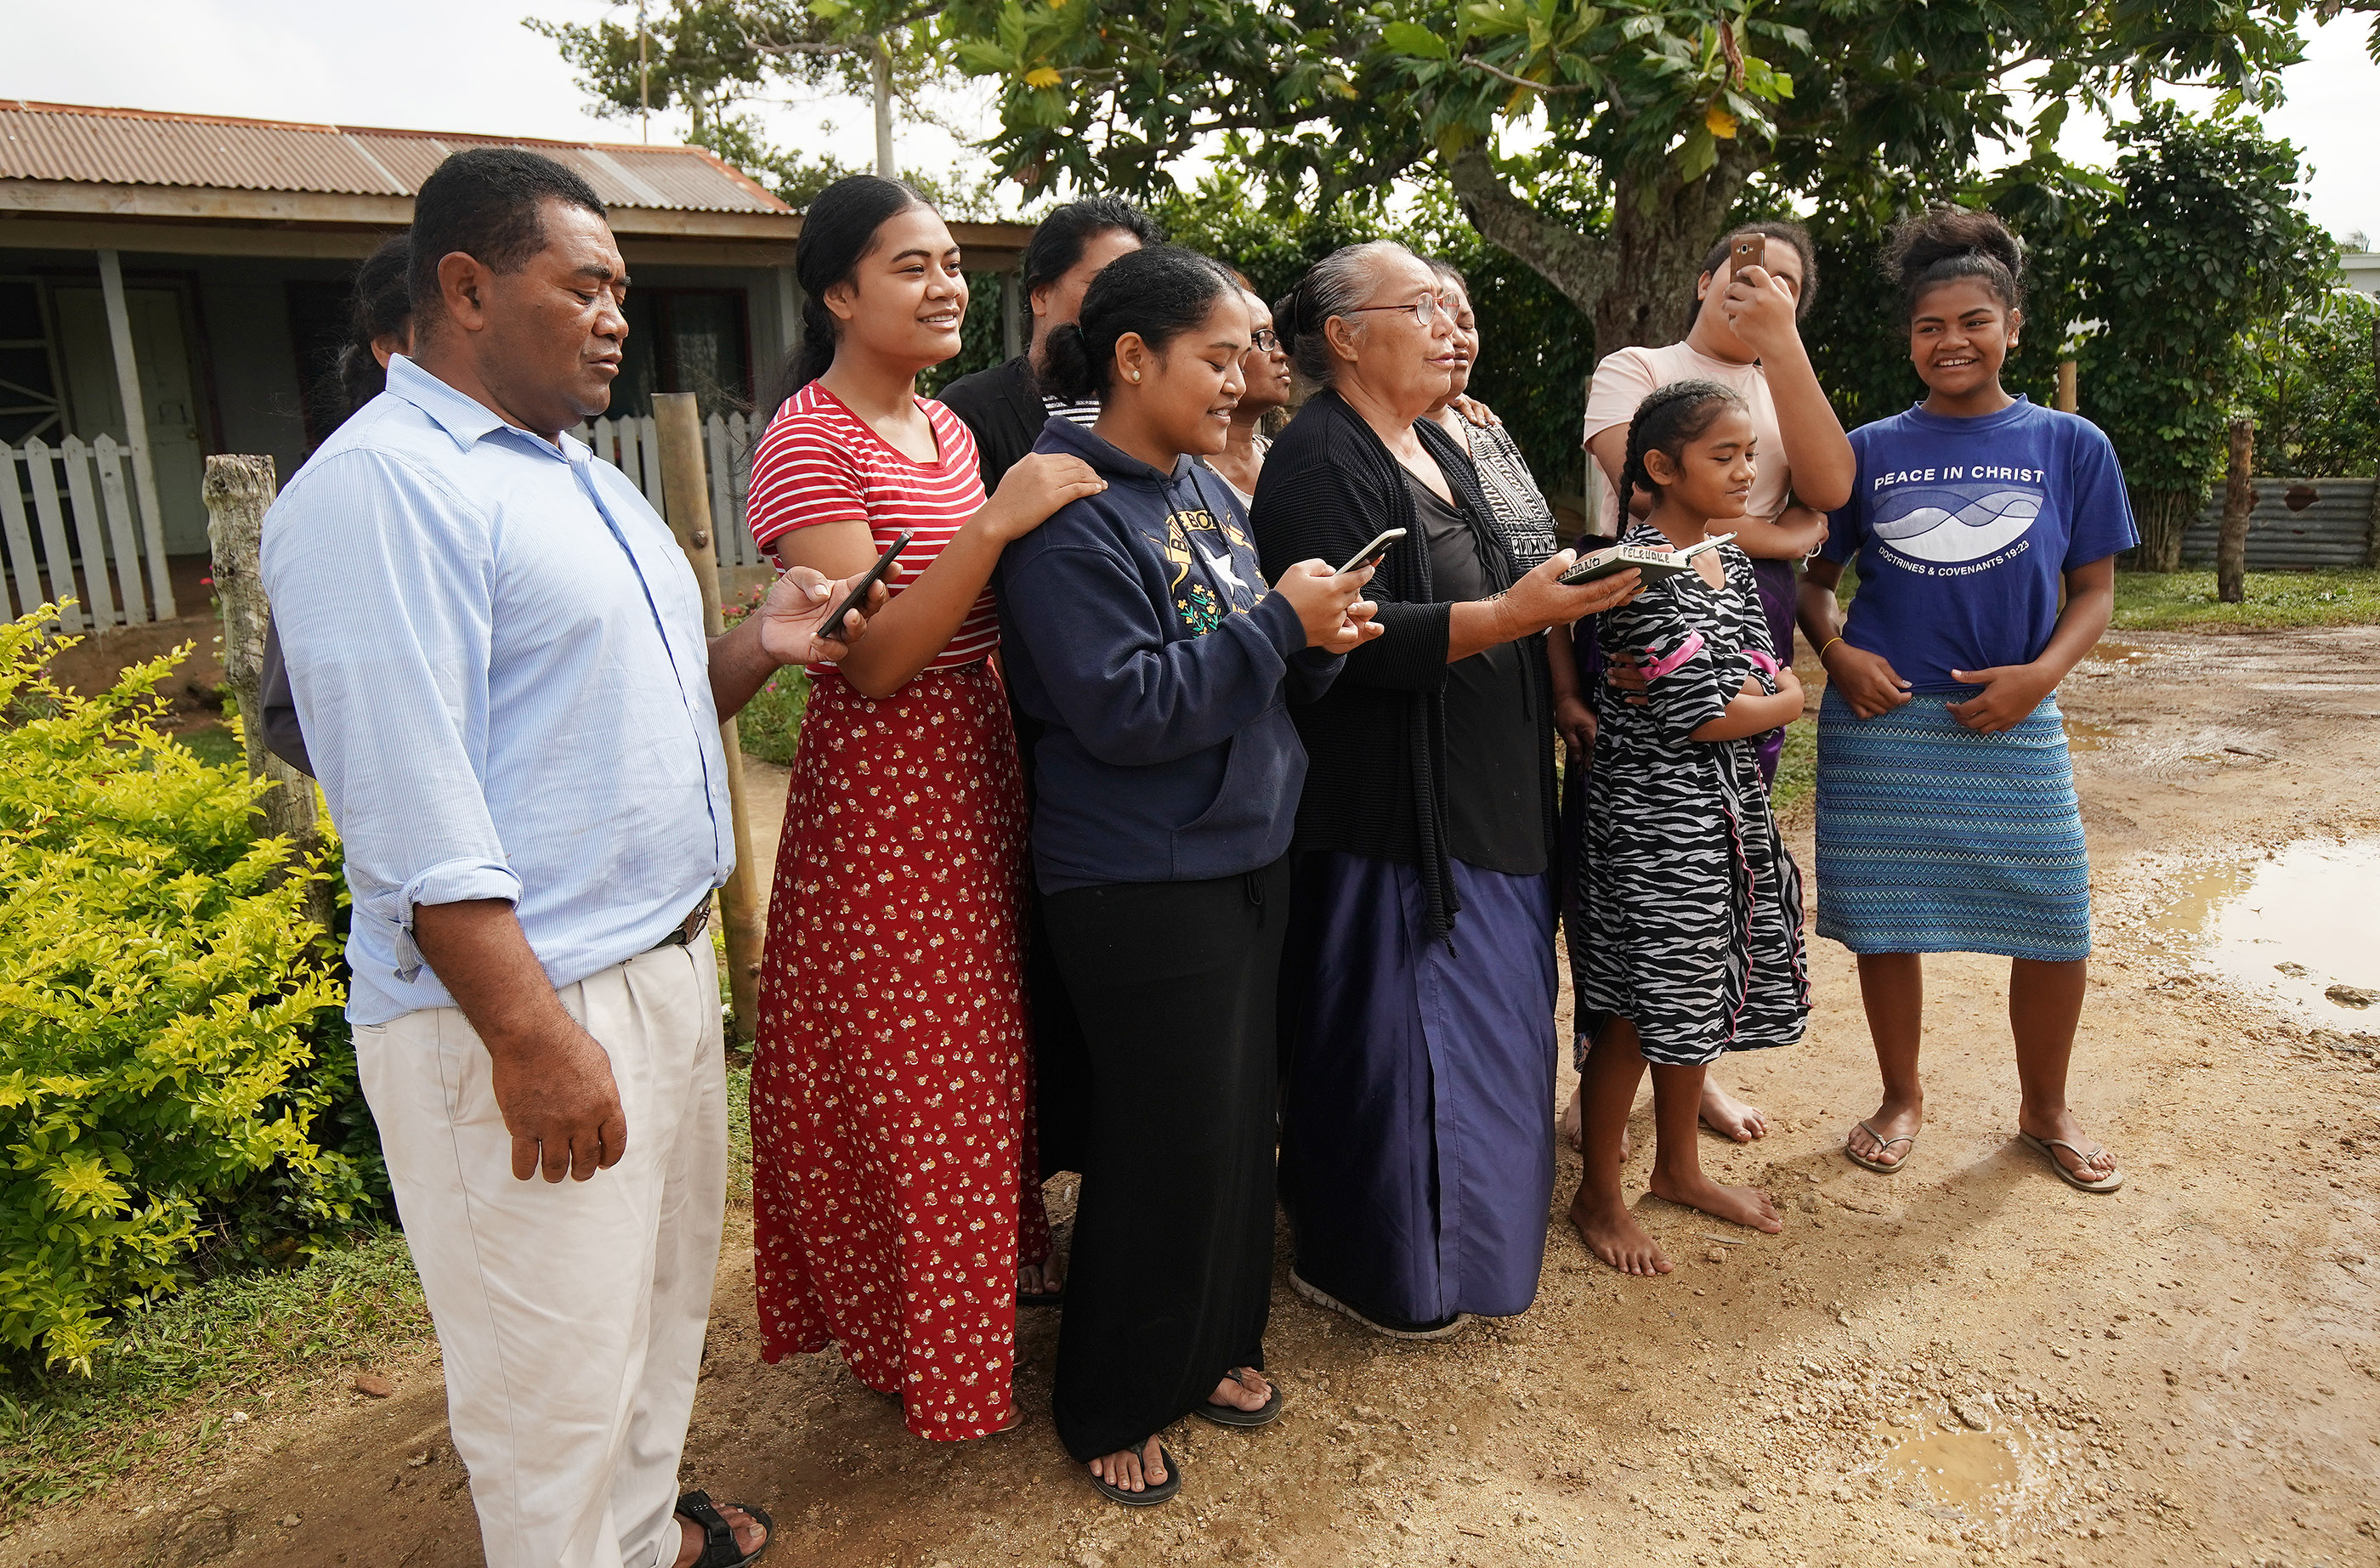 Tohiminiti Latu and his wife Ana sing a hymn with some of their children and neighbor outside their home in Tonga on May 23, 2019. Latu is bishop of his ward and has 10 children and one grandchild.